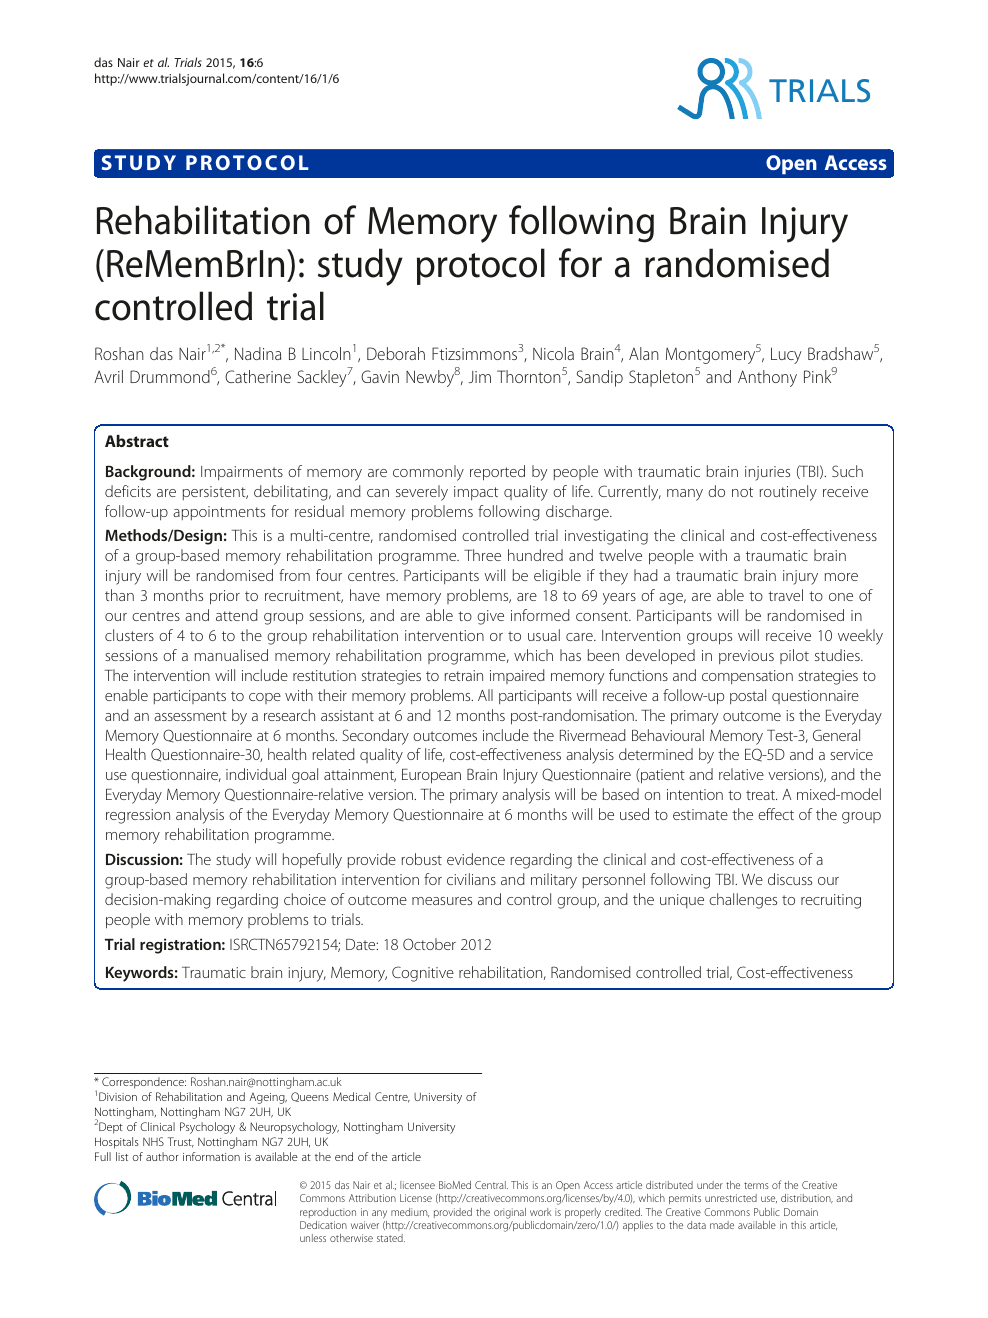 Rehabilitation of Memory following Brain Injury (ReMemBrIn